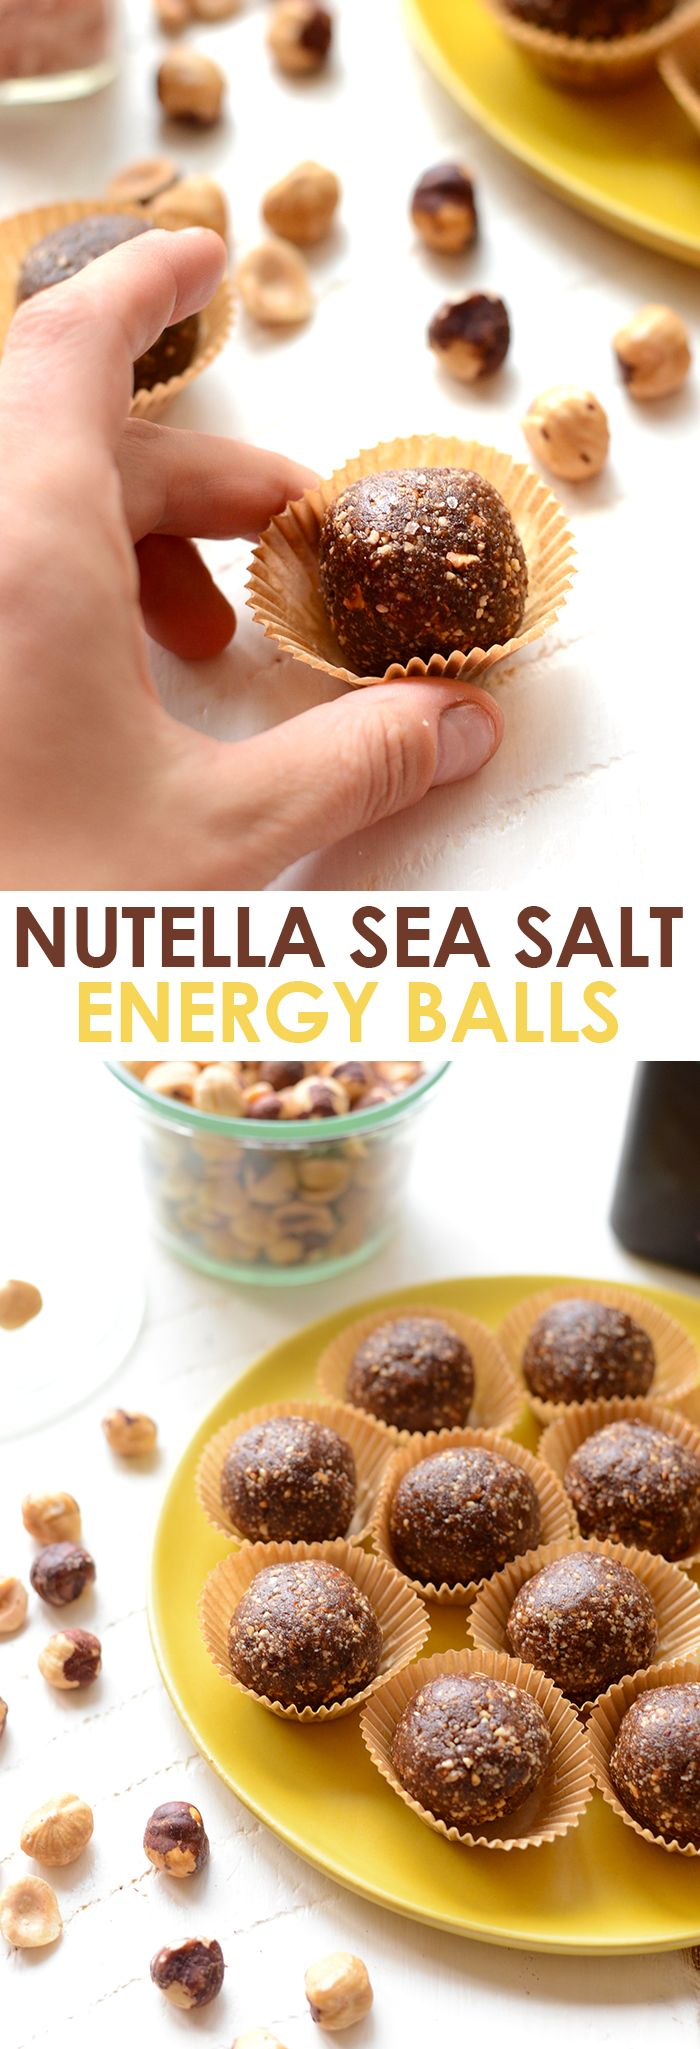 Who doesn't love Nutella and sea salt? Make these healthy energy balls made from hazelnuts, cocoa powder, dates, and sea salt for a guilt-free snack!